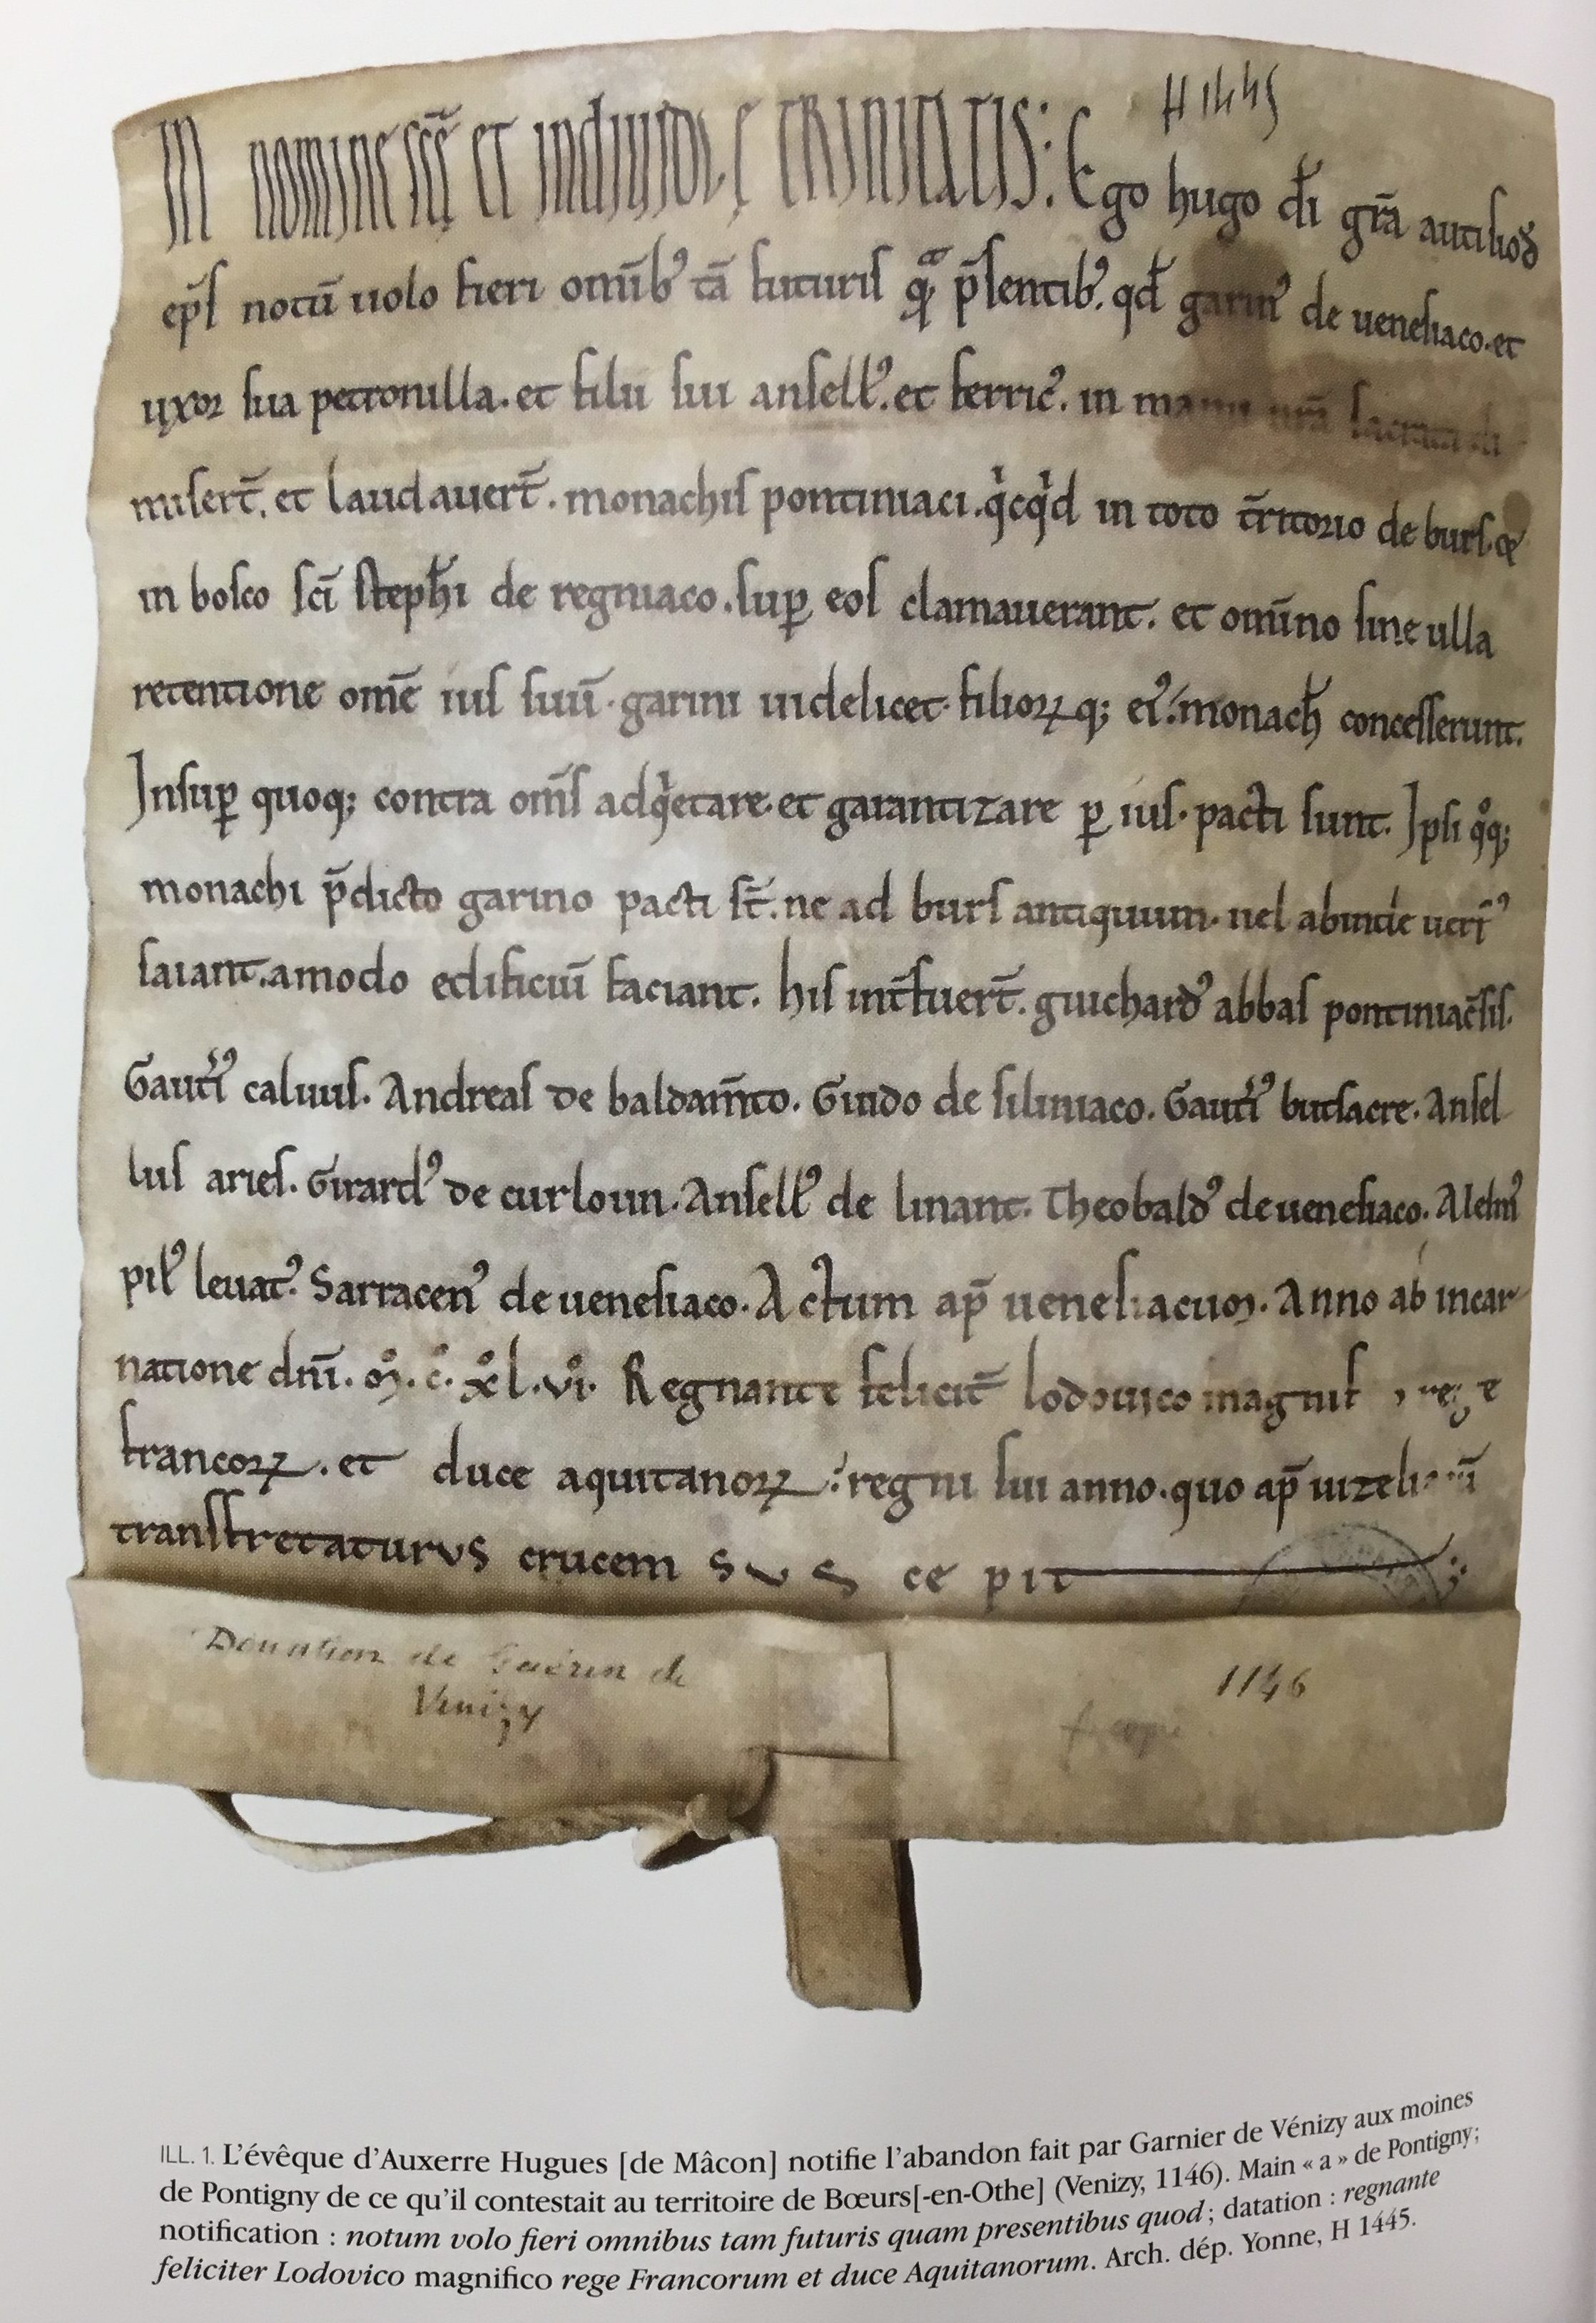 A piece of vellum with ornate medieval Latin script inked on it.